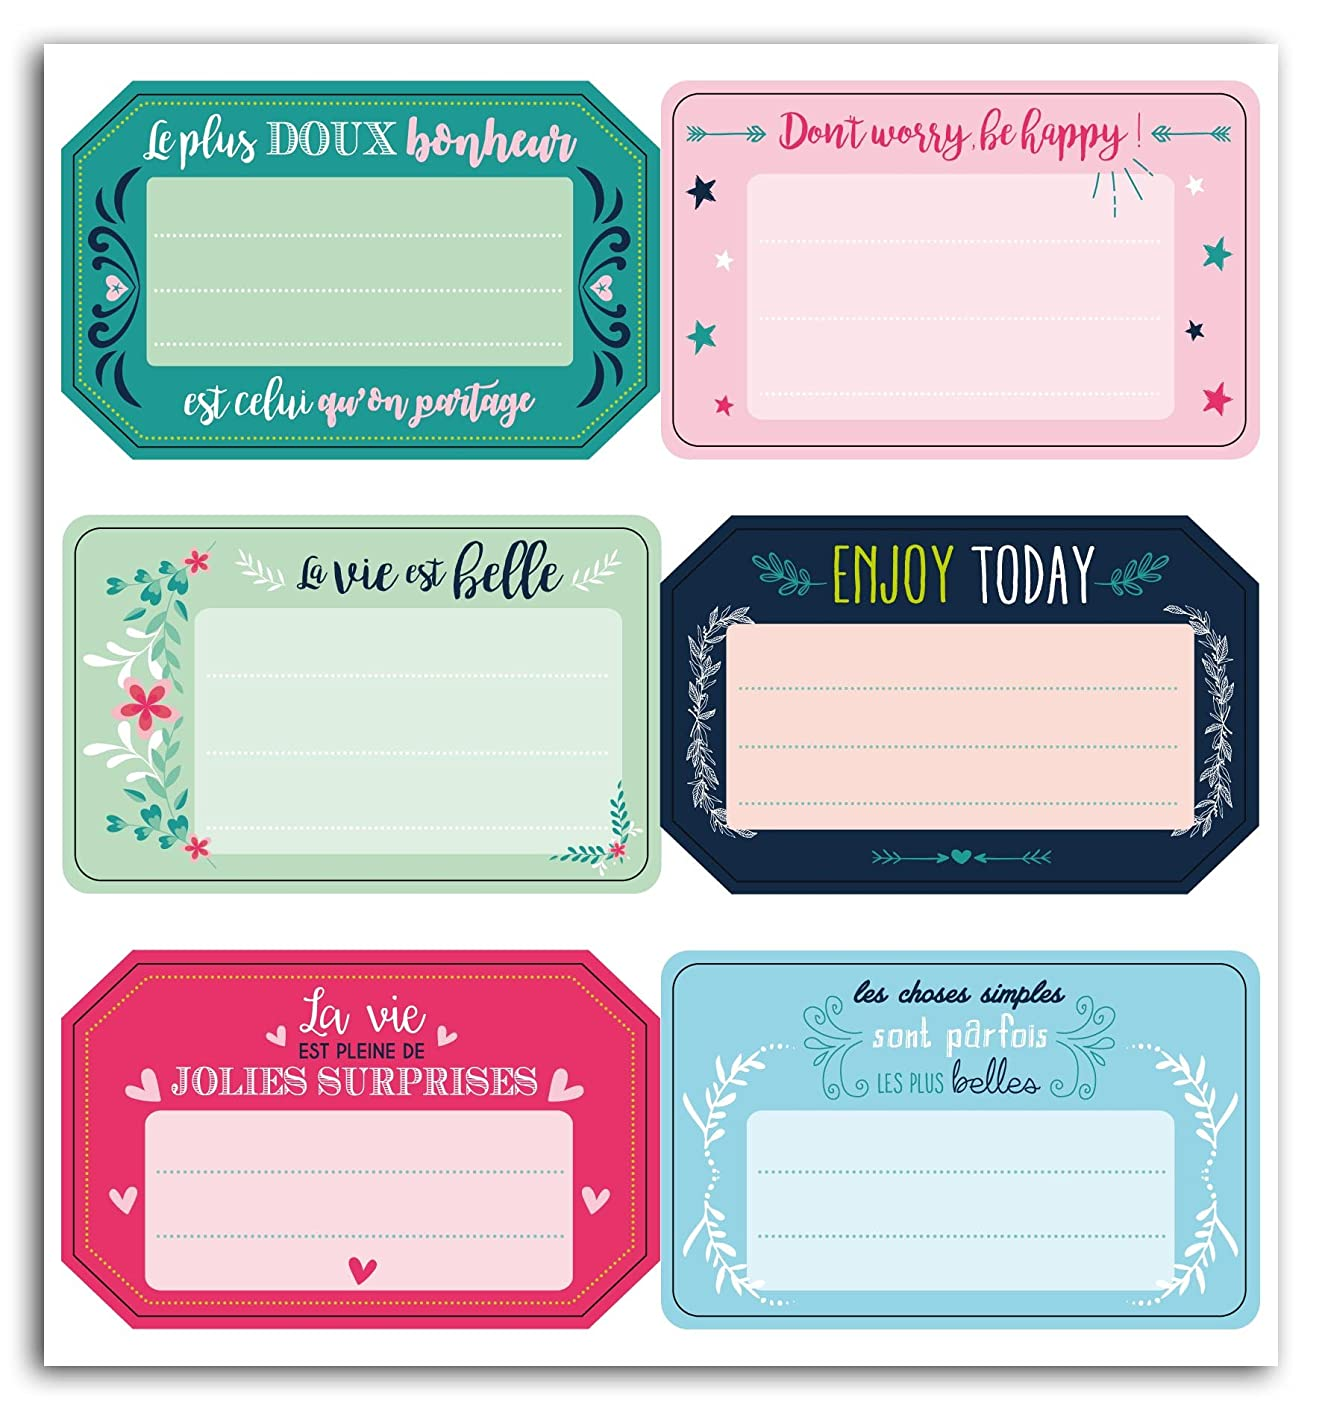 Toga 6 Adhesive Labels Positive Messages (in French & English)